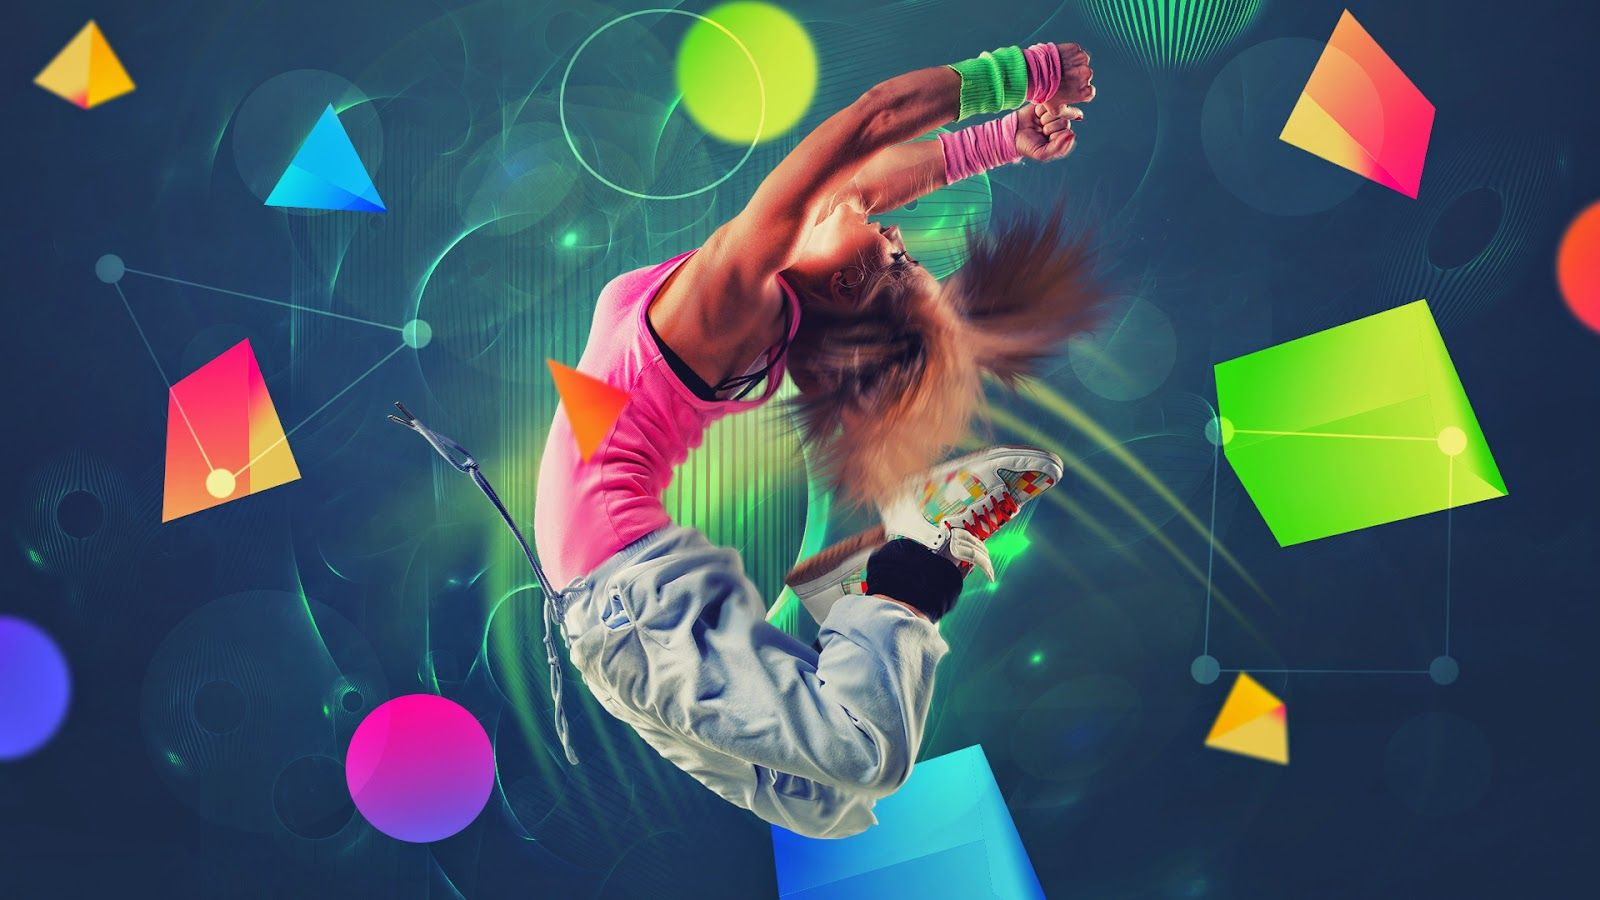 1600x900 Hip Hop Dance Hd Wallpapers Group Pictures(46+)